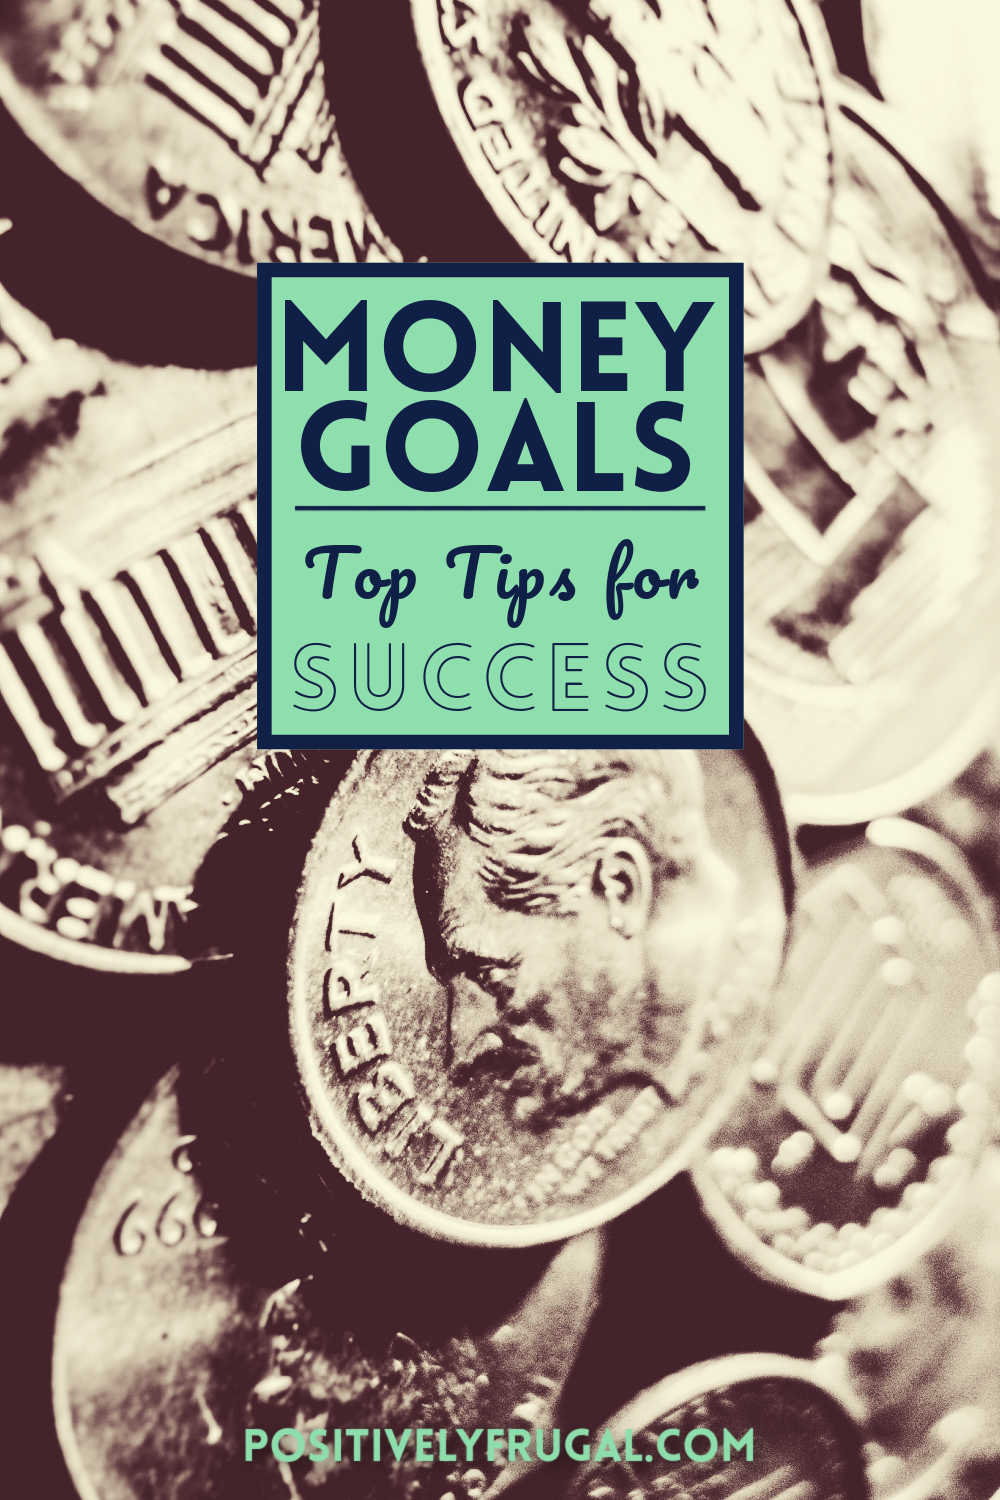 Money Goals Tips for Success by PositivelyFrugal.com